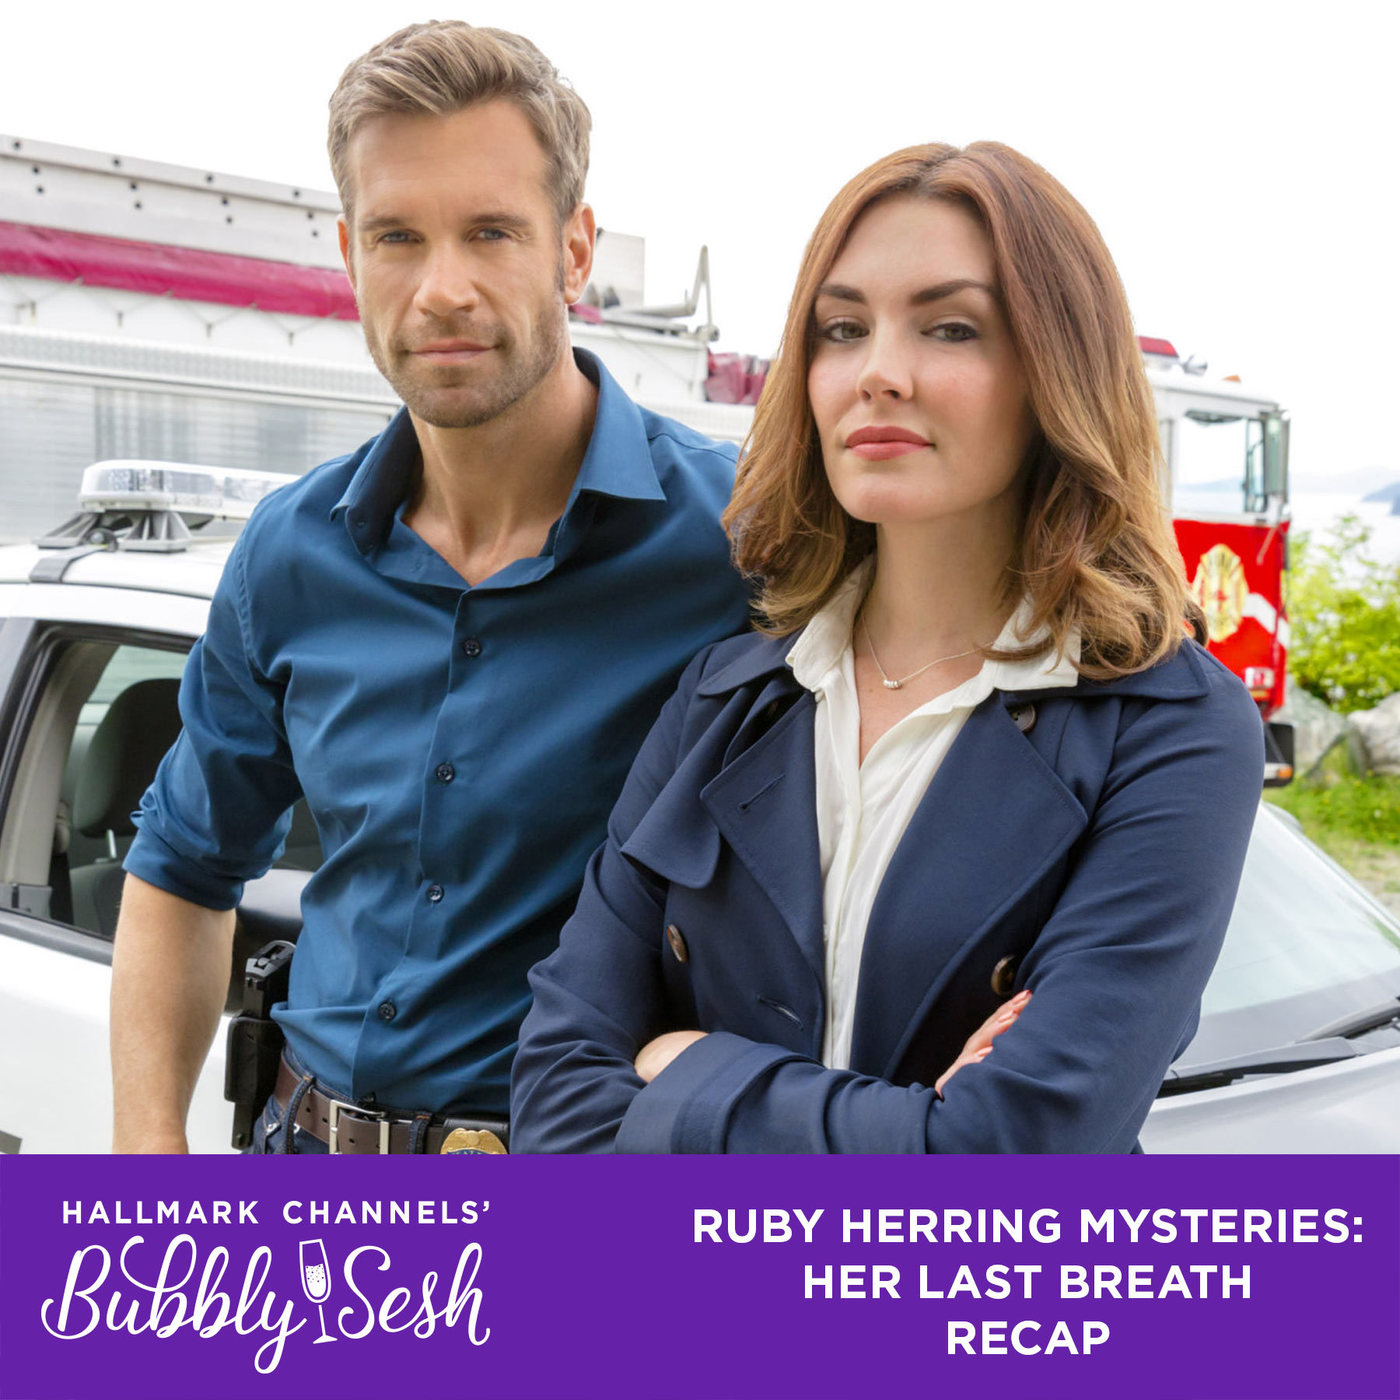 Ruby Herring Mysteries: Her Last Breath Recap